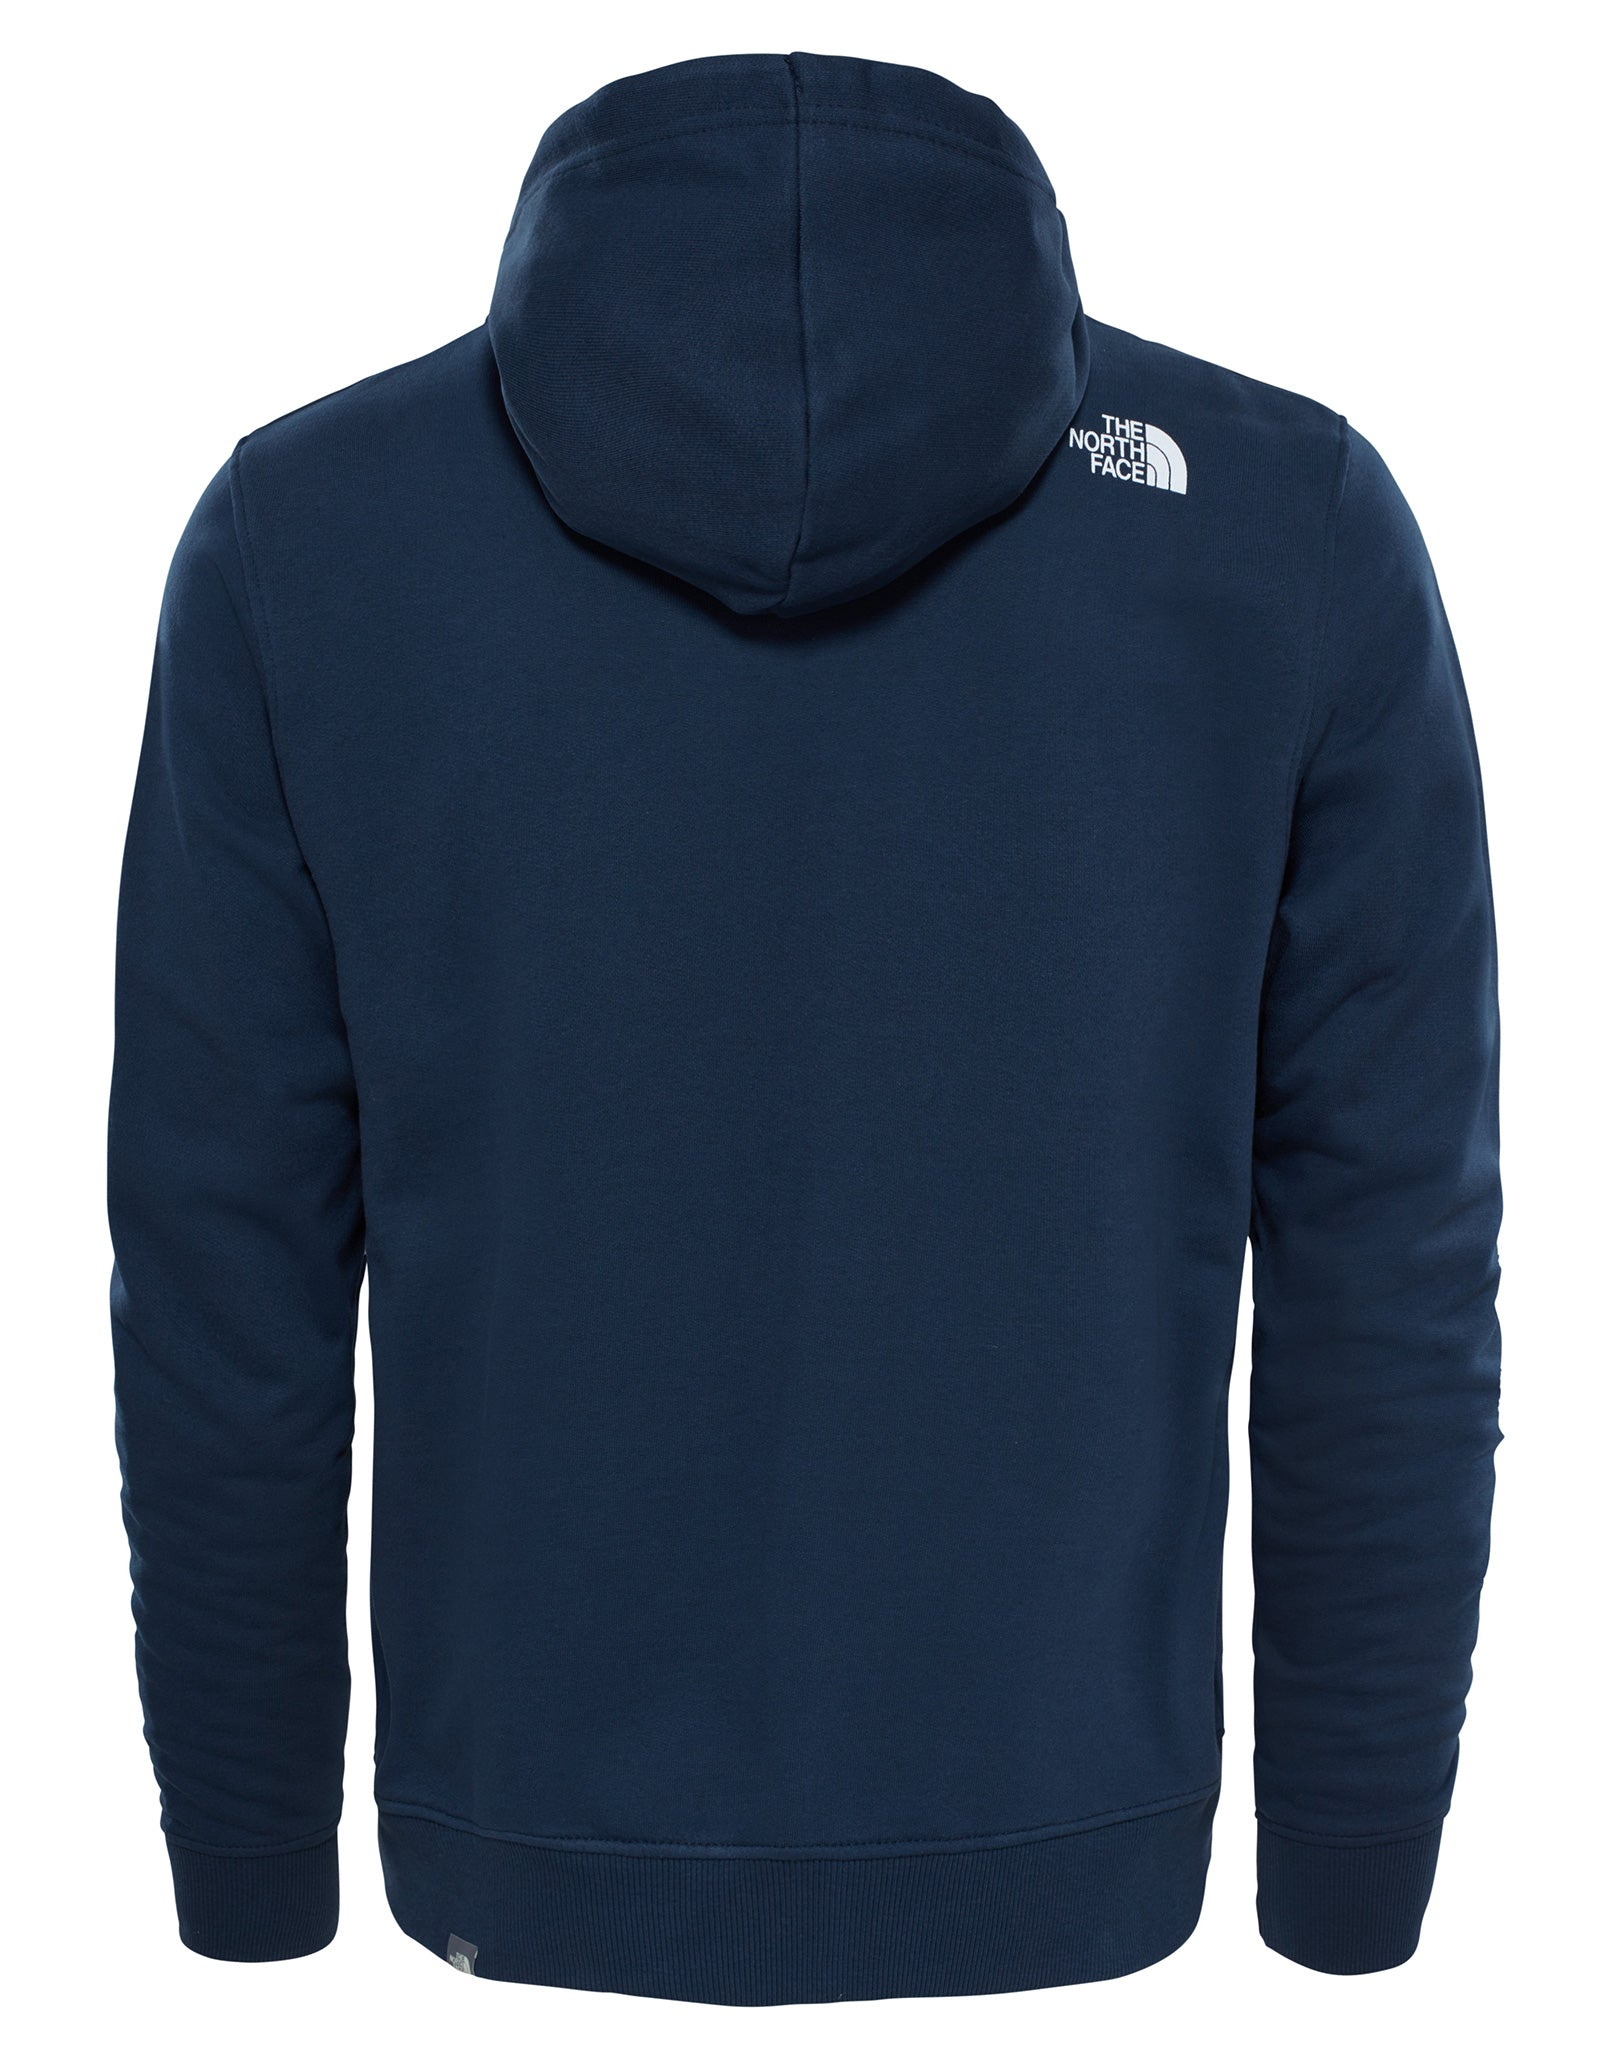 best sneakers 4f2db c39f0 ... The North Face Mens Open Gate Full Zip Light Hoodie - Urban Navy